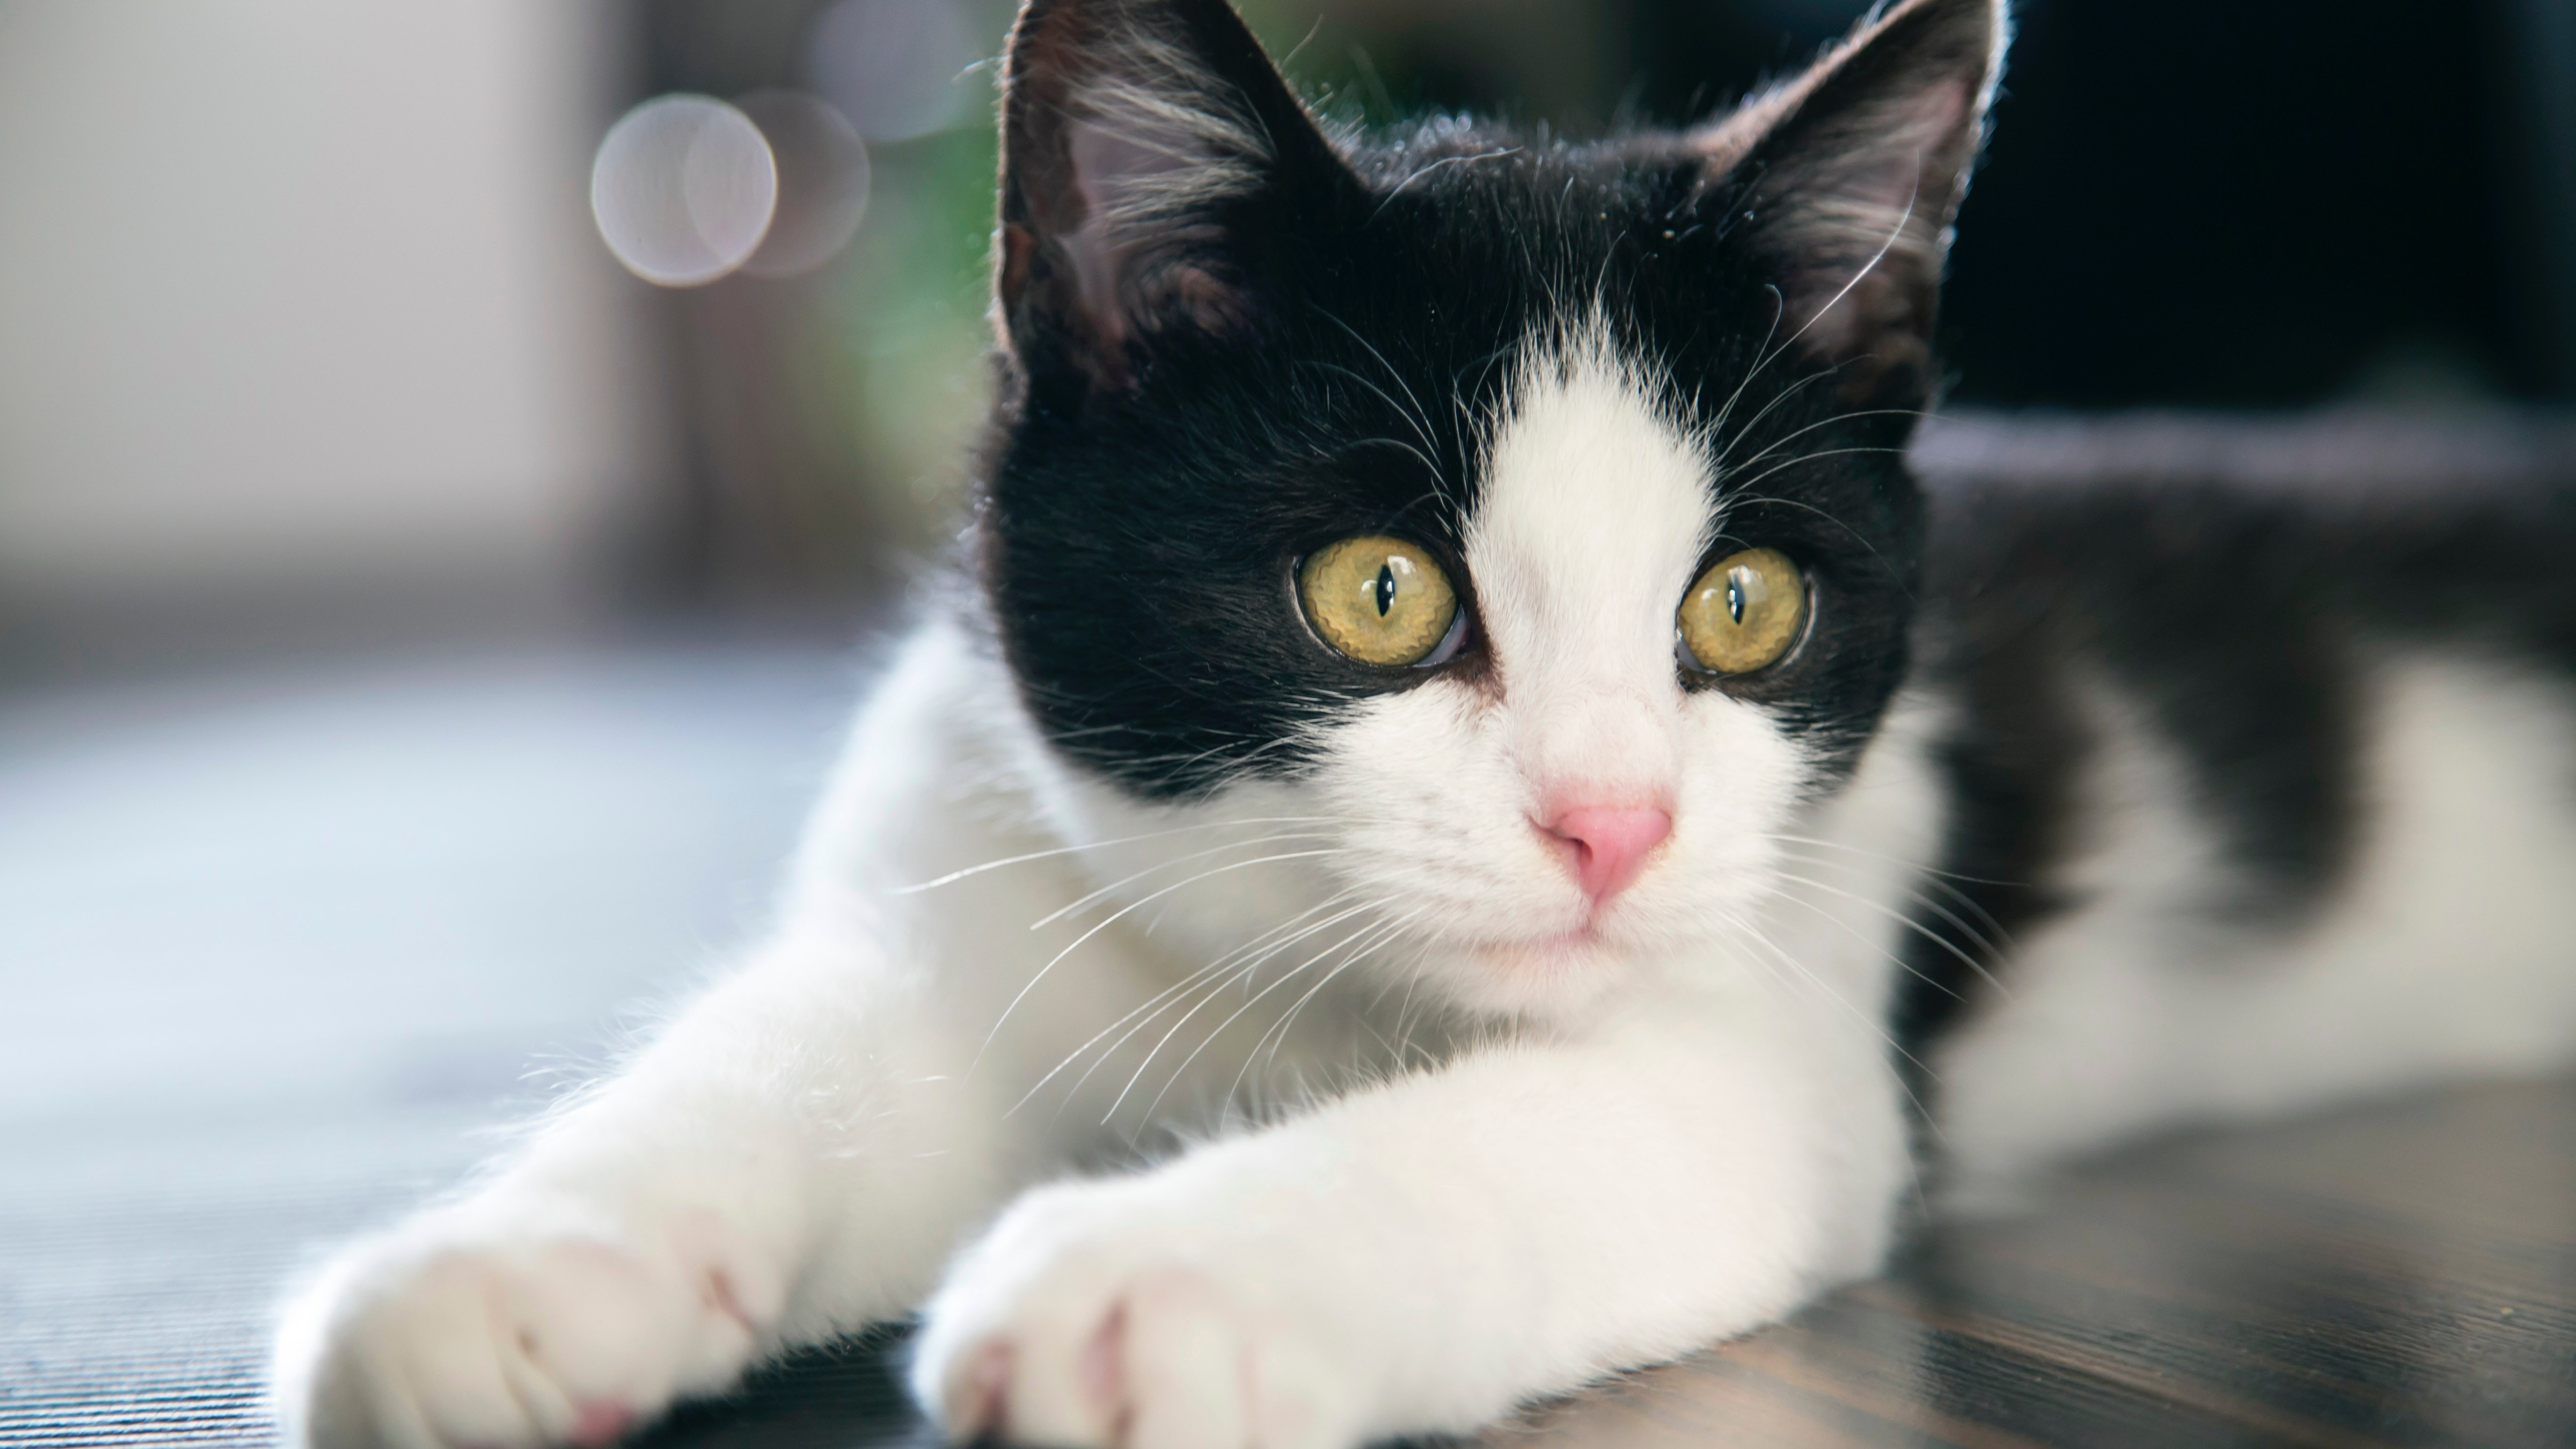 Cute Black And White Cat 5k Retina Ultra Hd Wallpaper Background Image 5120x2880 Id 1026647 Wallpaper Abyss